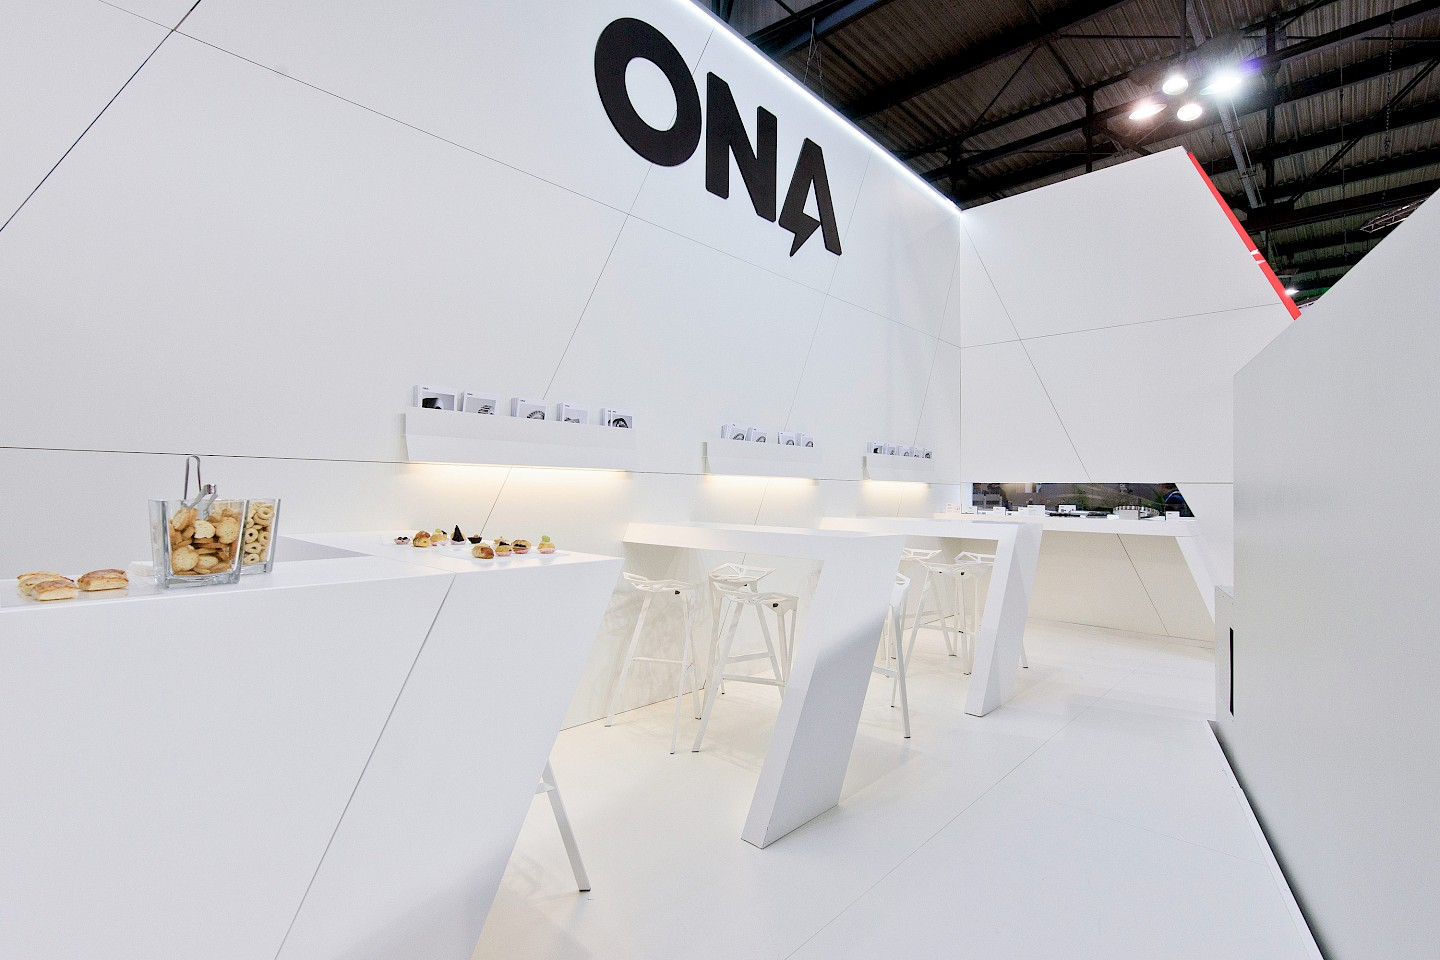 interiorismo stand narrative ona spaces digital design 06 technology branding move